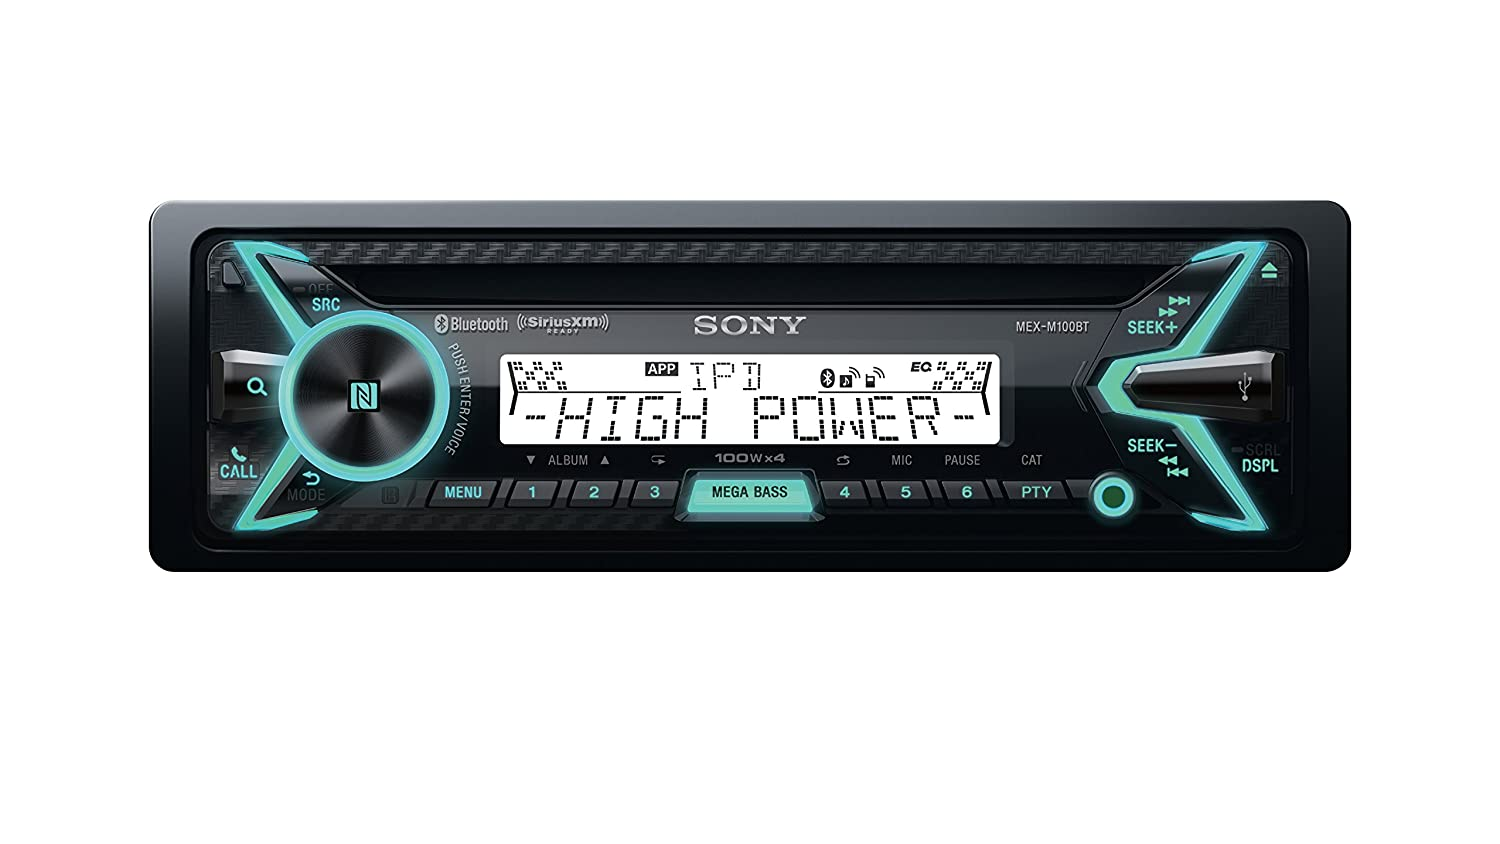 Sony Mexm100bt 160w Rms Marine Cd Receiver With Kicker Bass Station Wiring Harness Bluetooth Black And Siriusxm Ready Car Electronics